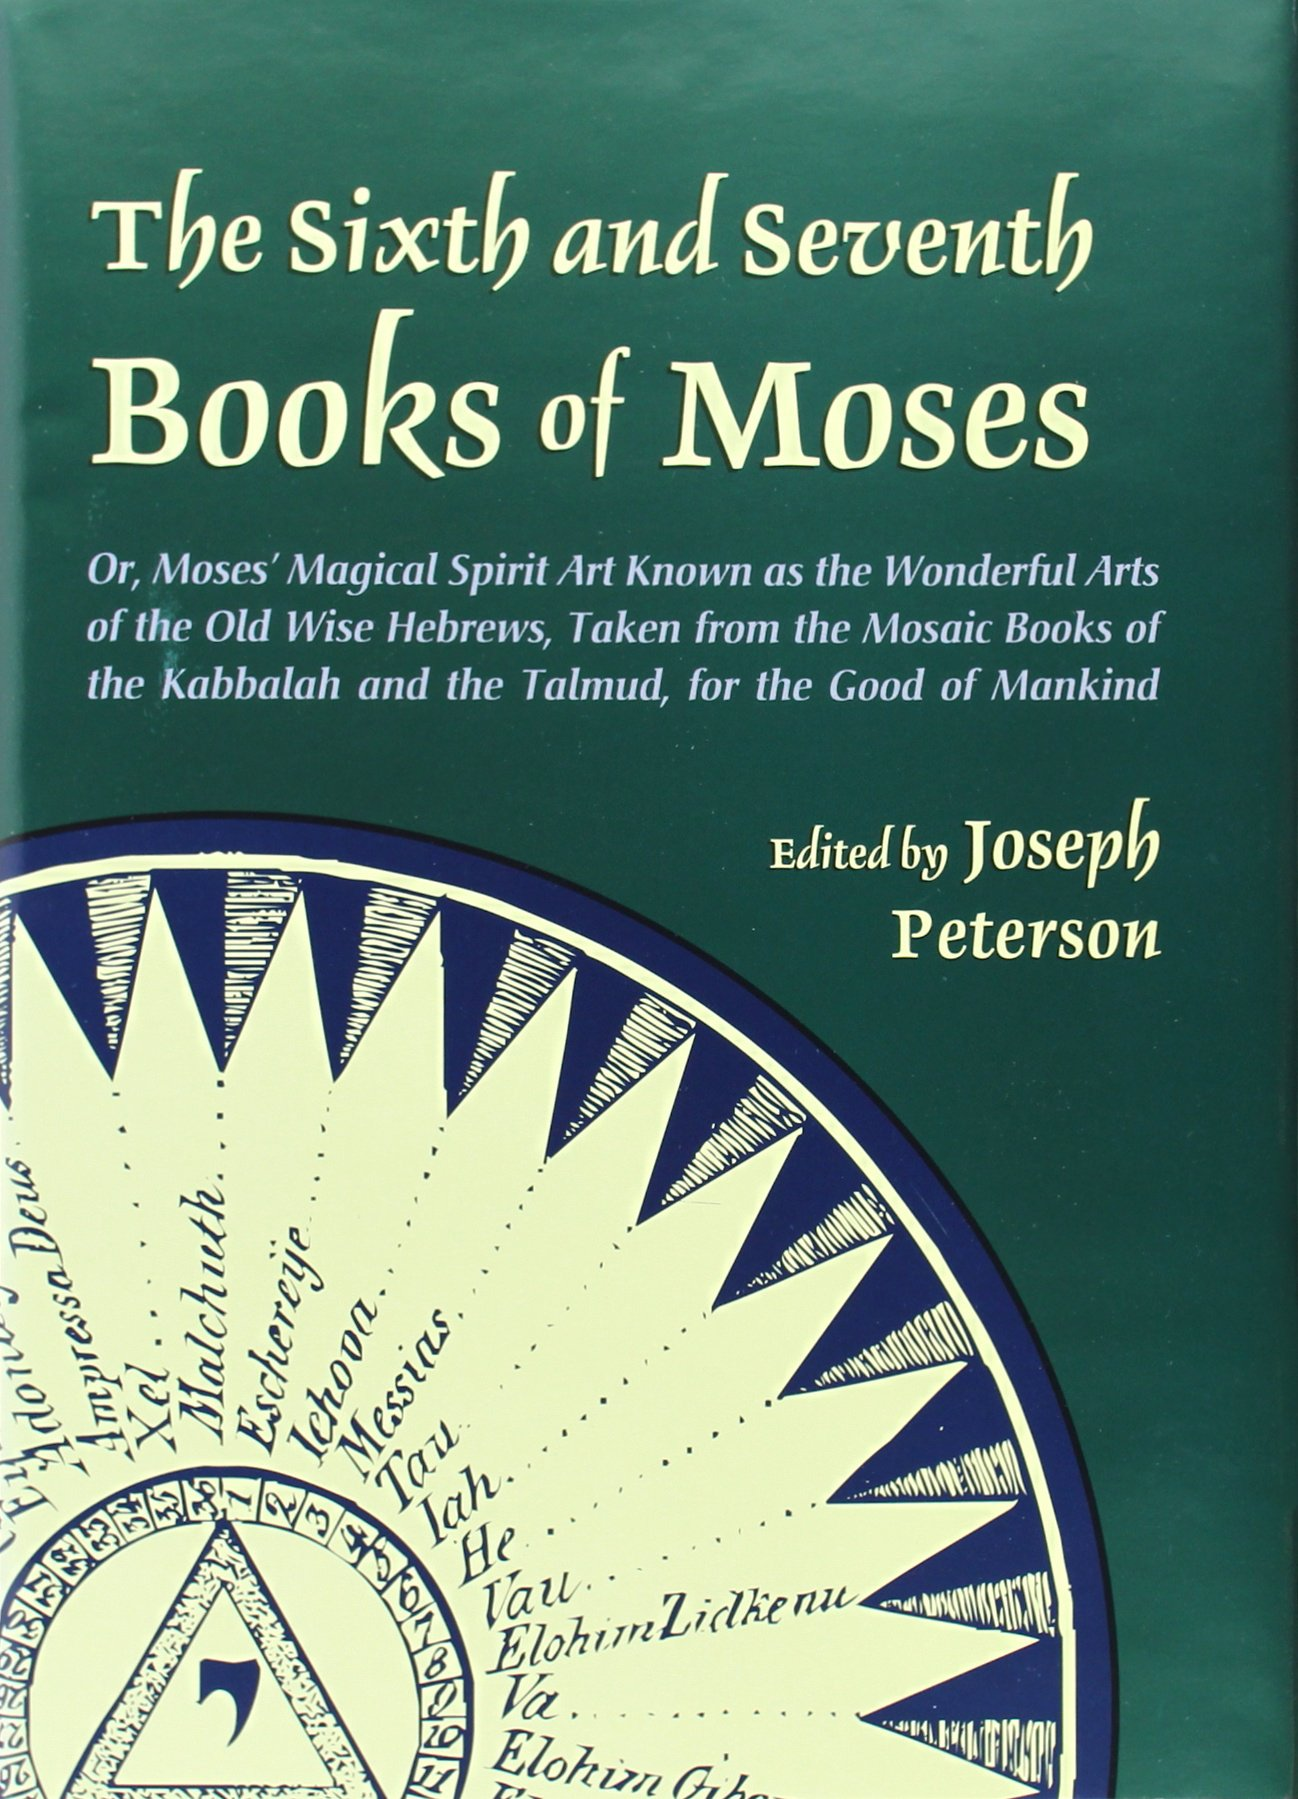 The Sixth and Seventh Books of Moses by New Age